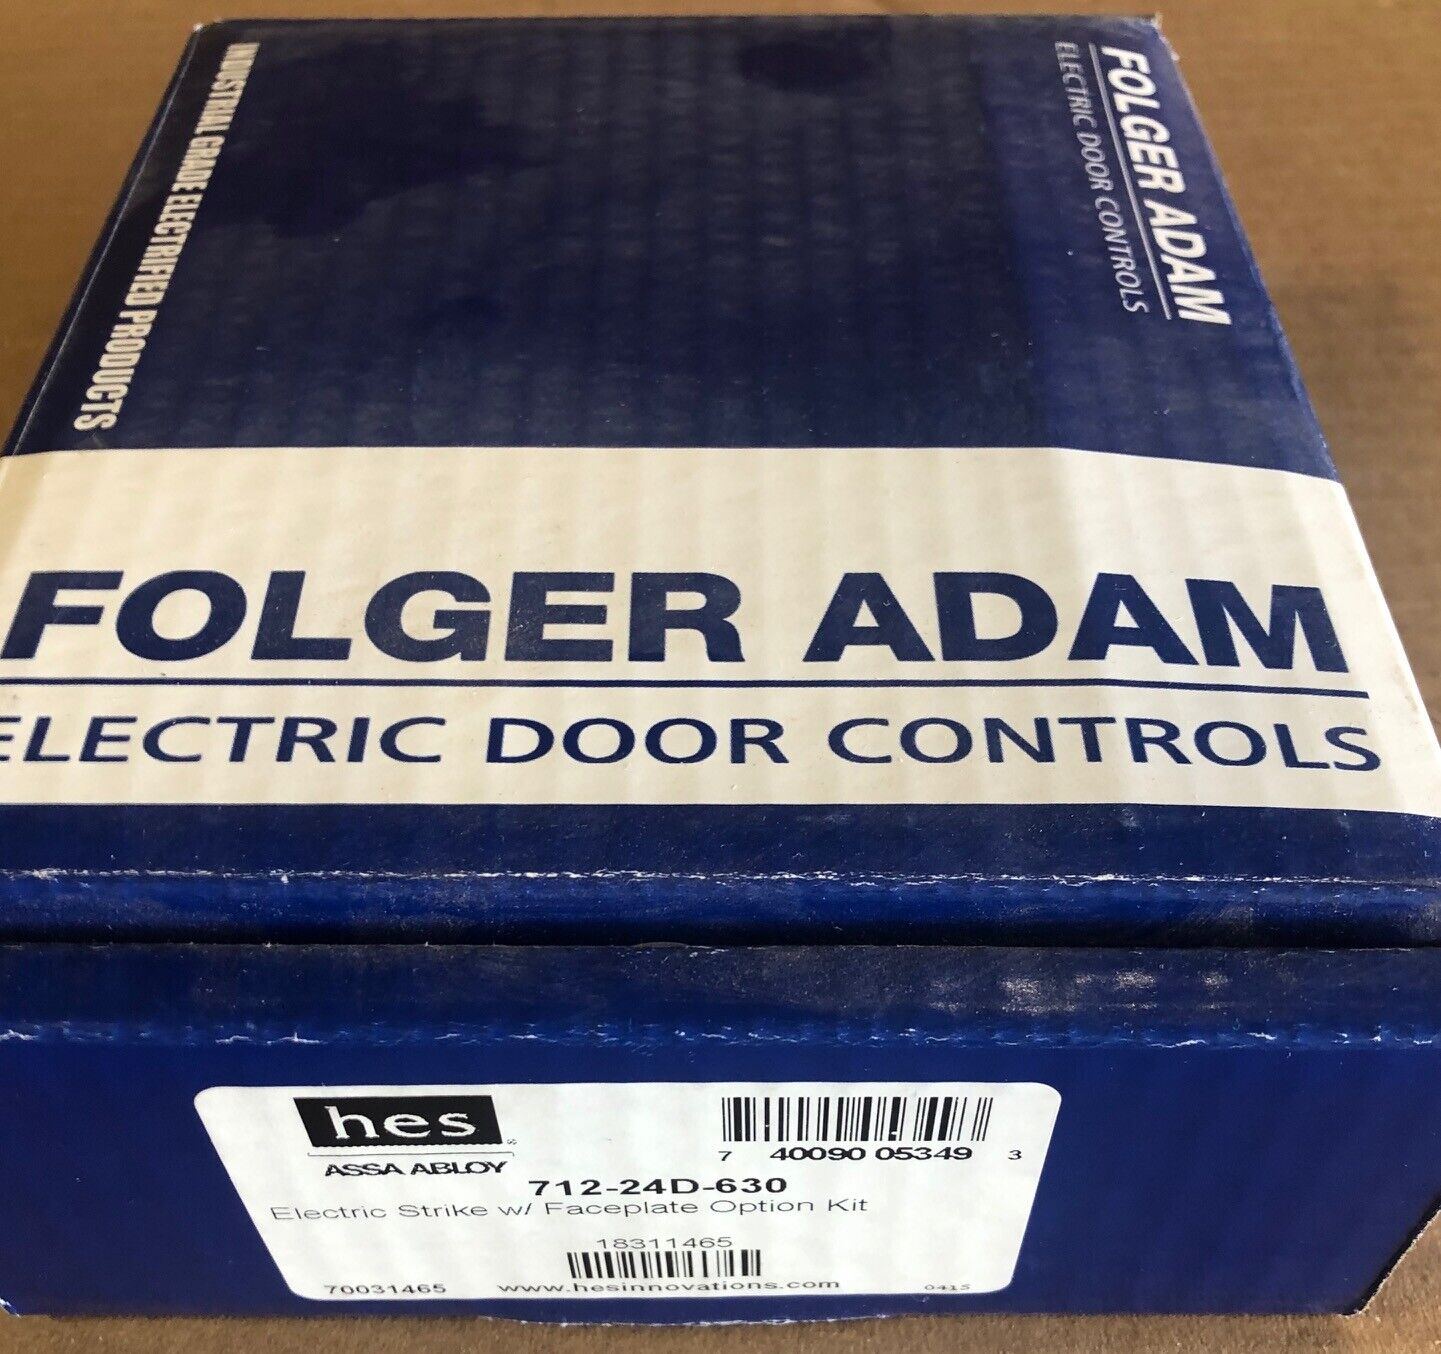 HES Folger Adam Electric Strike Part # 712-24D-630  NEW in the Box!